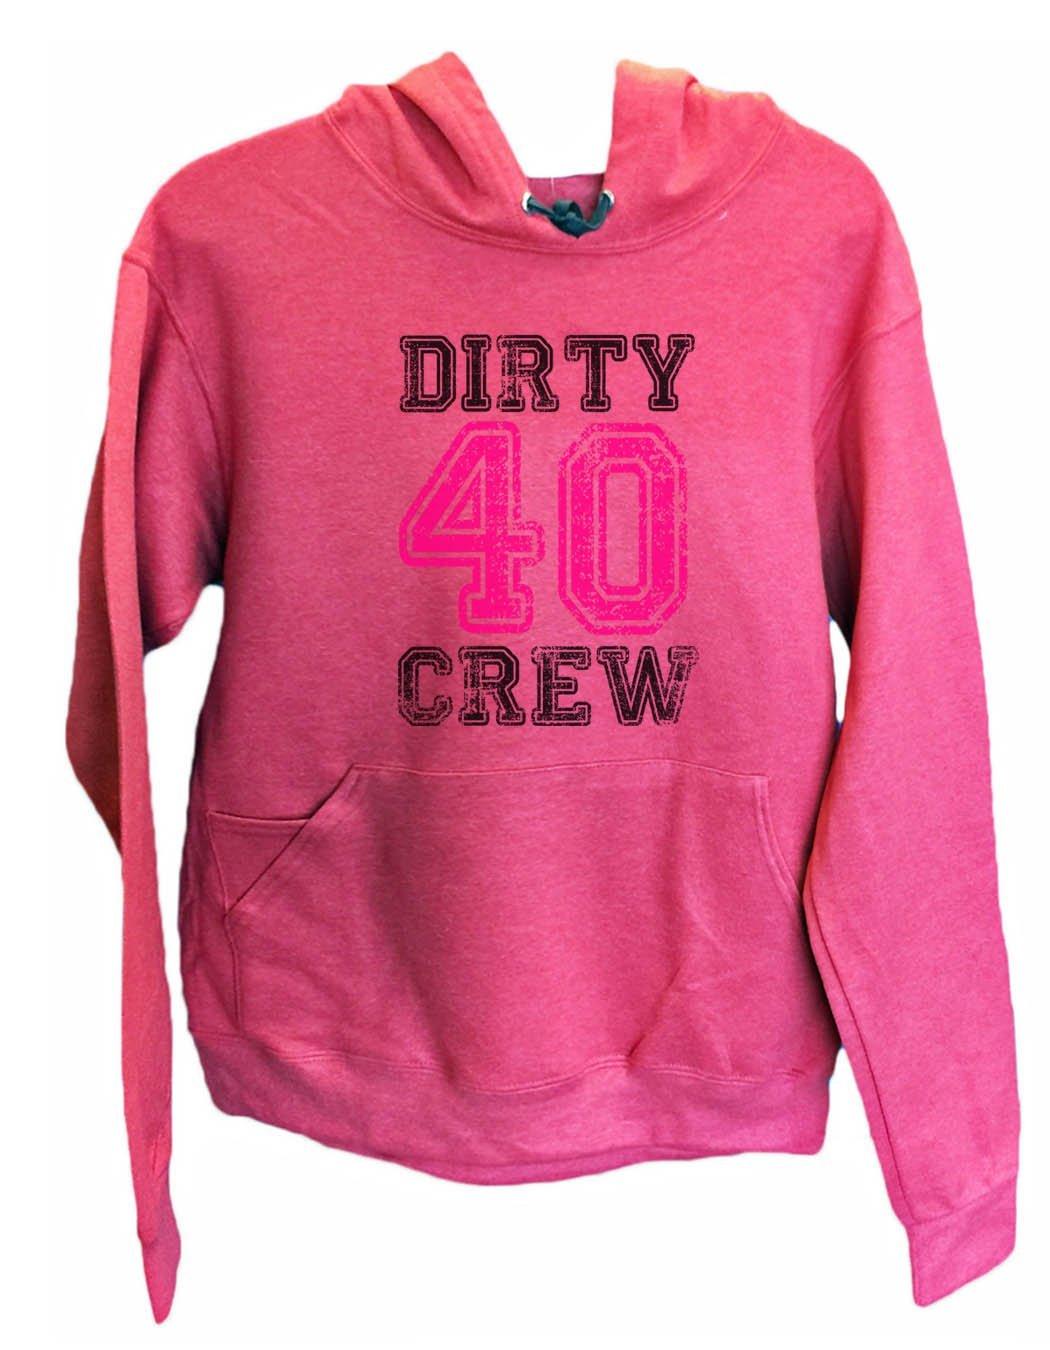 UNISEX HOODIE - Dirty Forty Crew - FUNNY MENS AND WOMENS HOODED SWEATSHIRTS - 2146 Funny Shirt Small / Cranberry Red